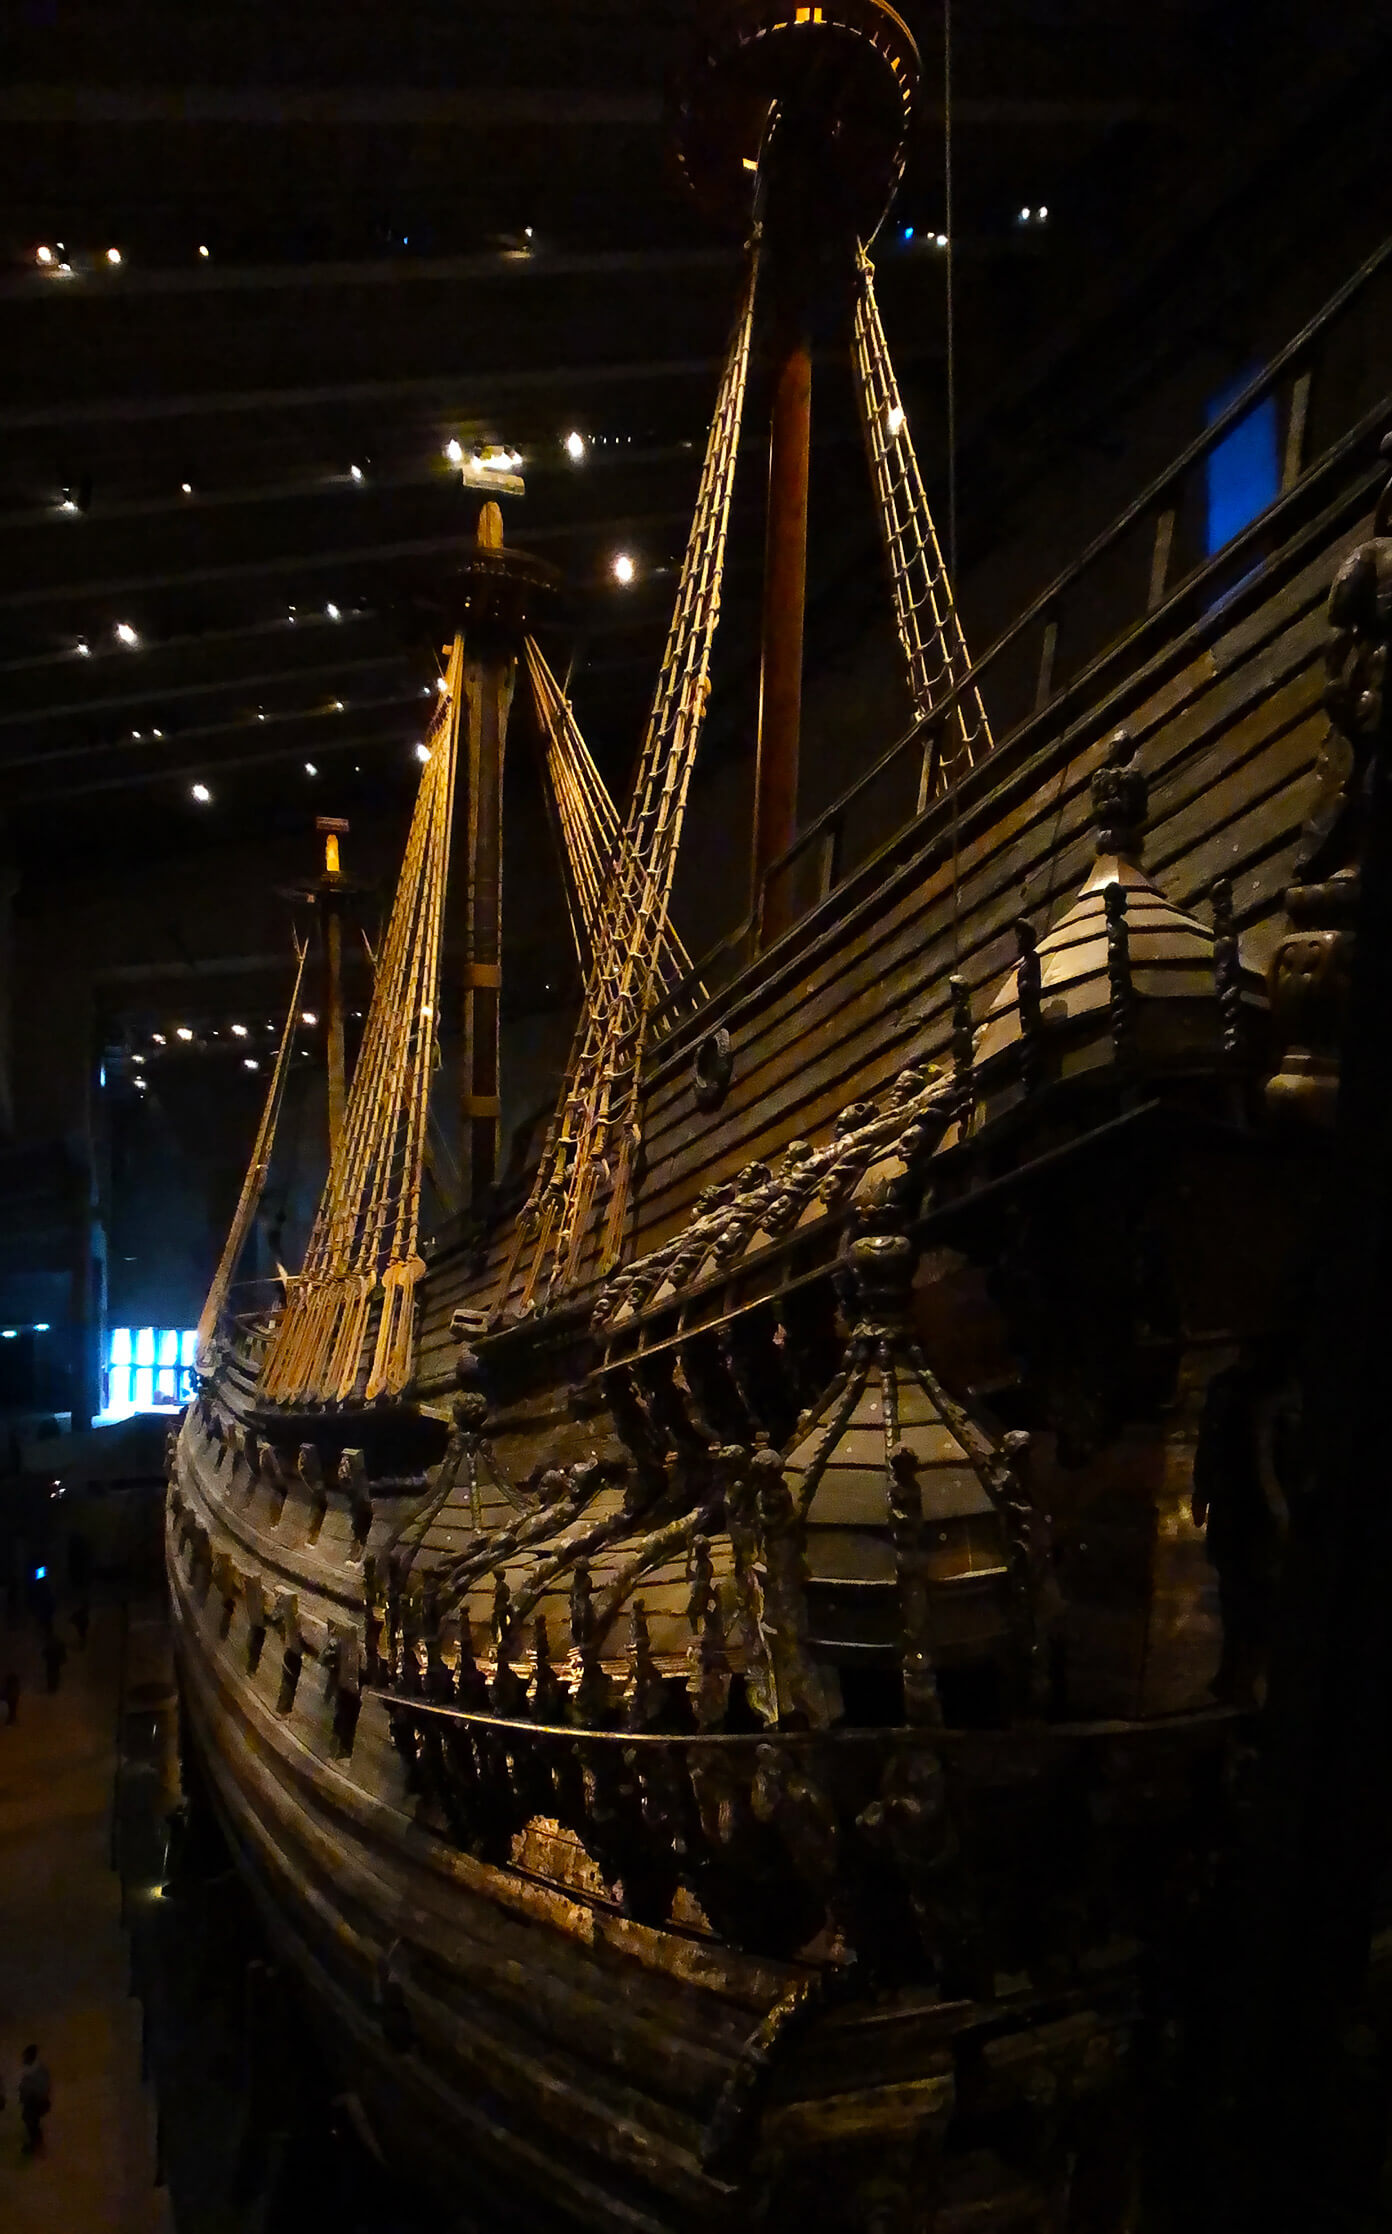 The Vasa Museum - An Amazing Shipwreck Museum in Stockholm, Sweden